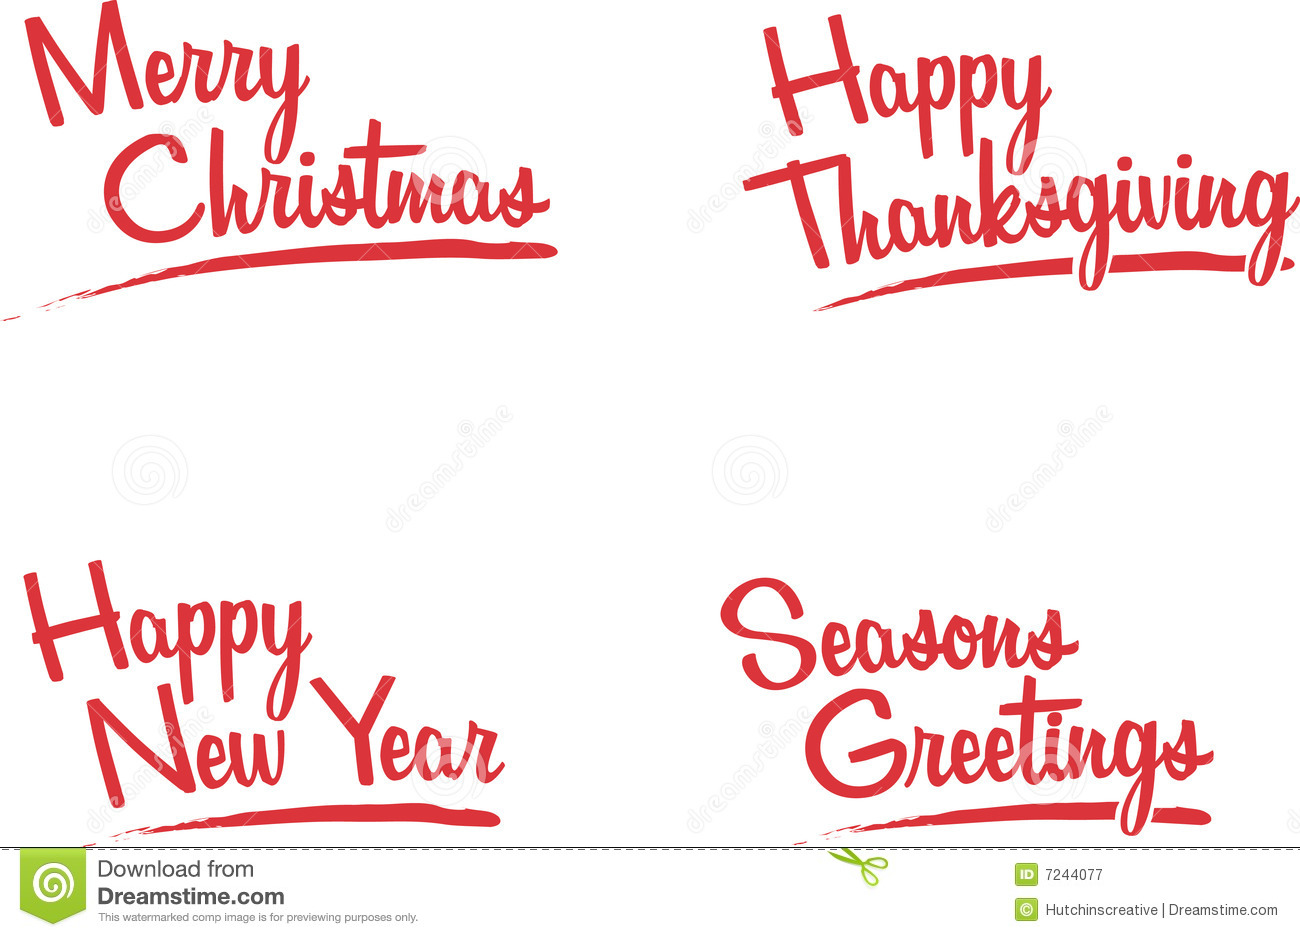 Seasons greetings stock illustration illustration of happy 7244077 download seasons greetings stock illustration illustration of happy 7244077 m4hsunfo